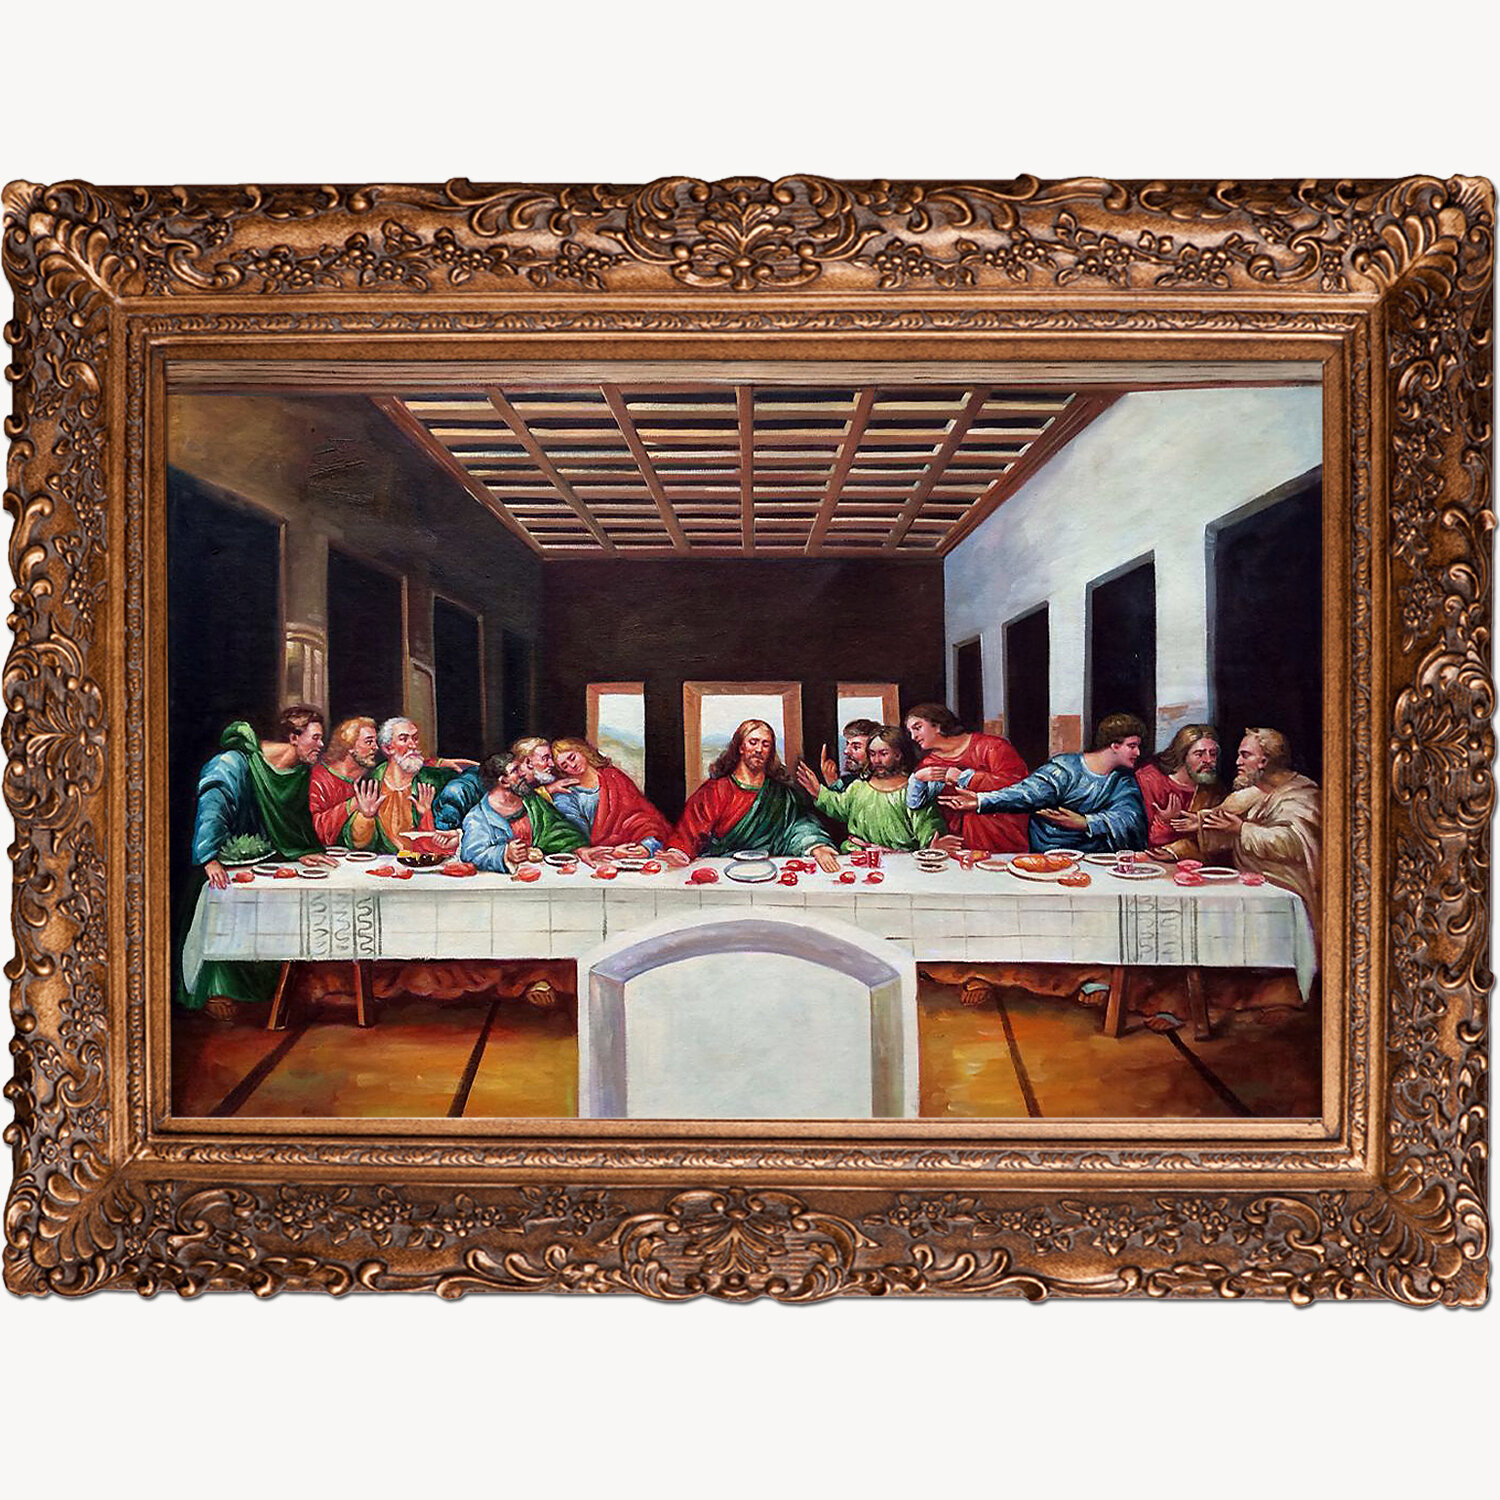 La Pastiche \'The Last Supper\' by Leonardo Da Vinci Framed Painting ...